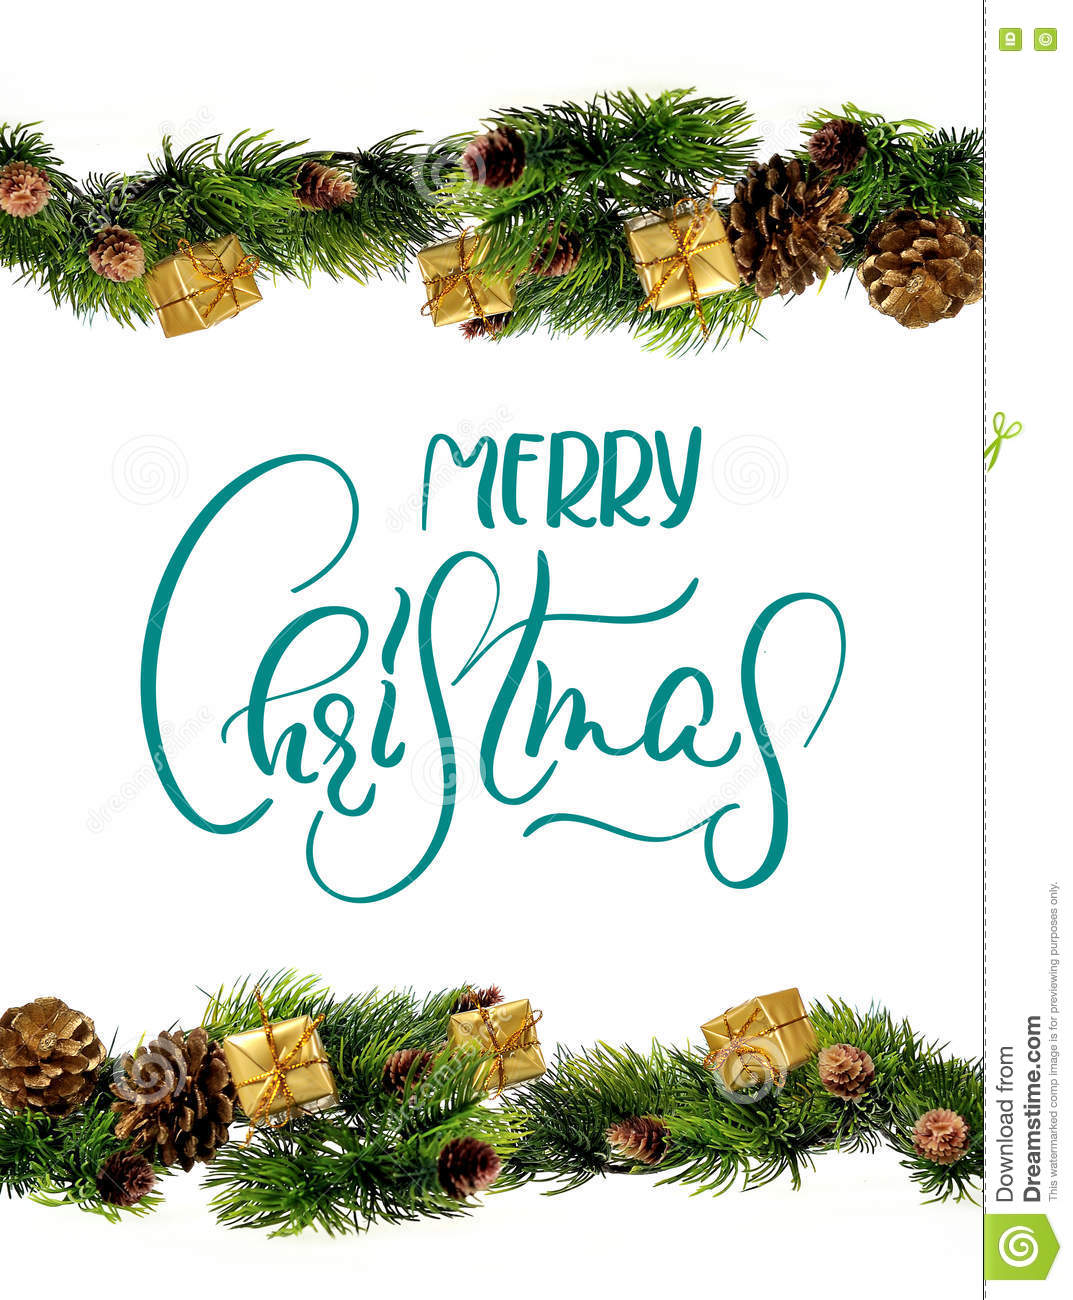 Decorations Border Design With Text Merry Christmas ...